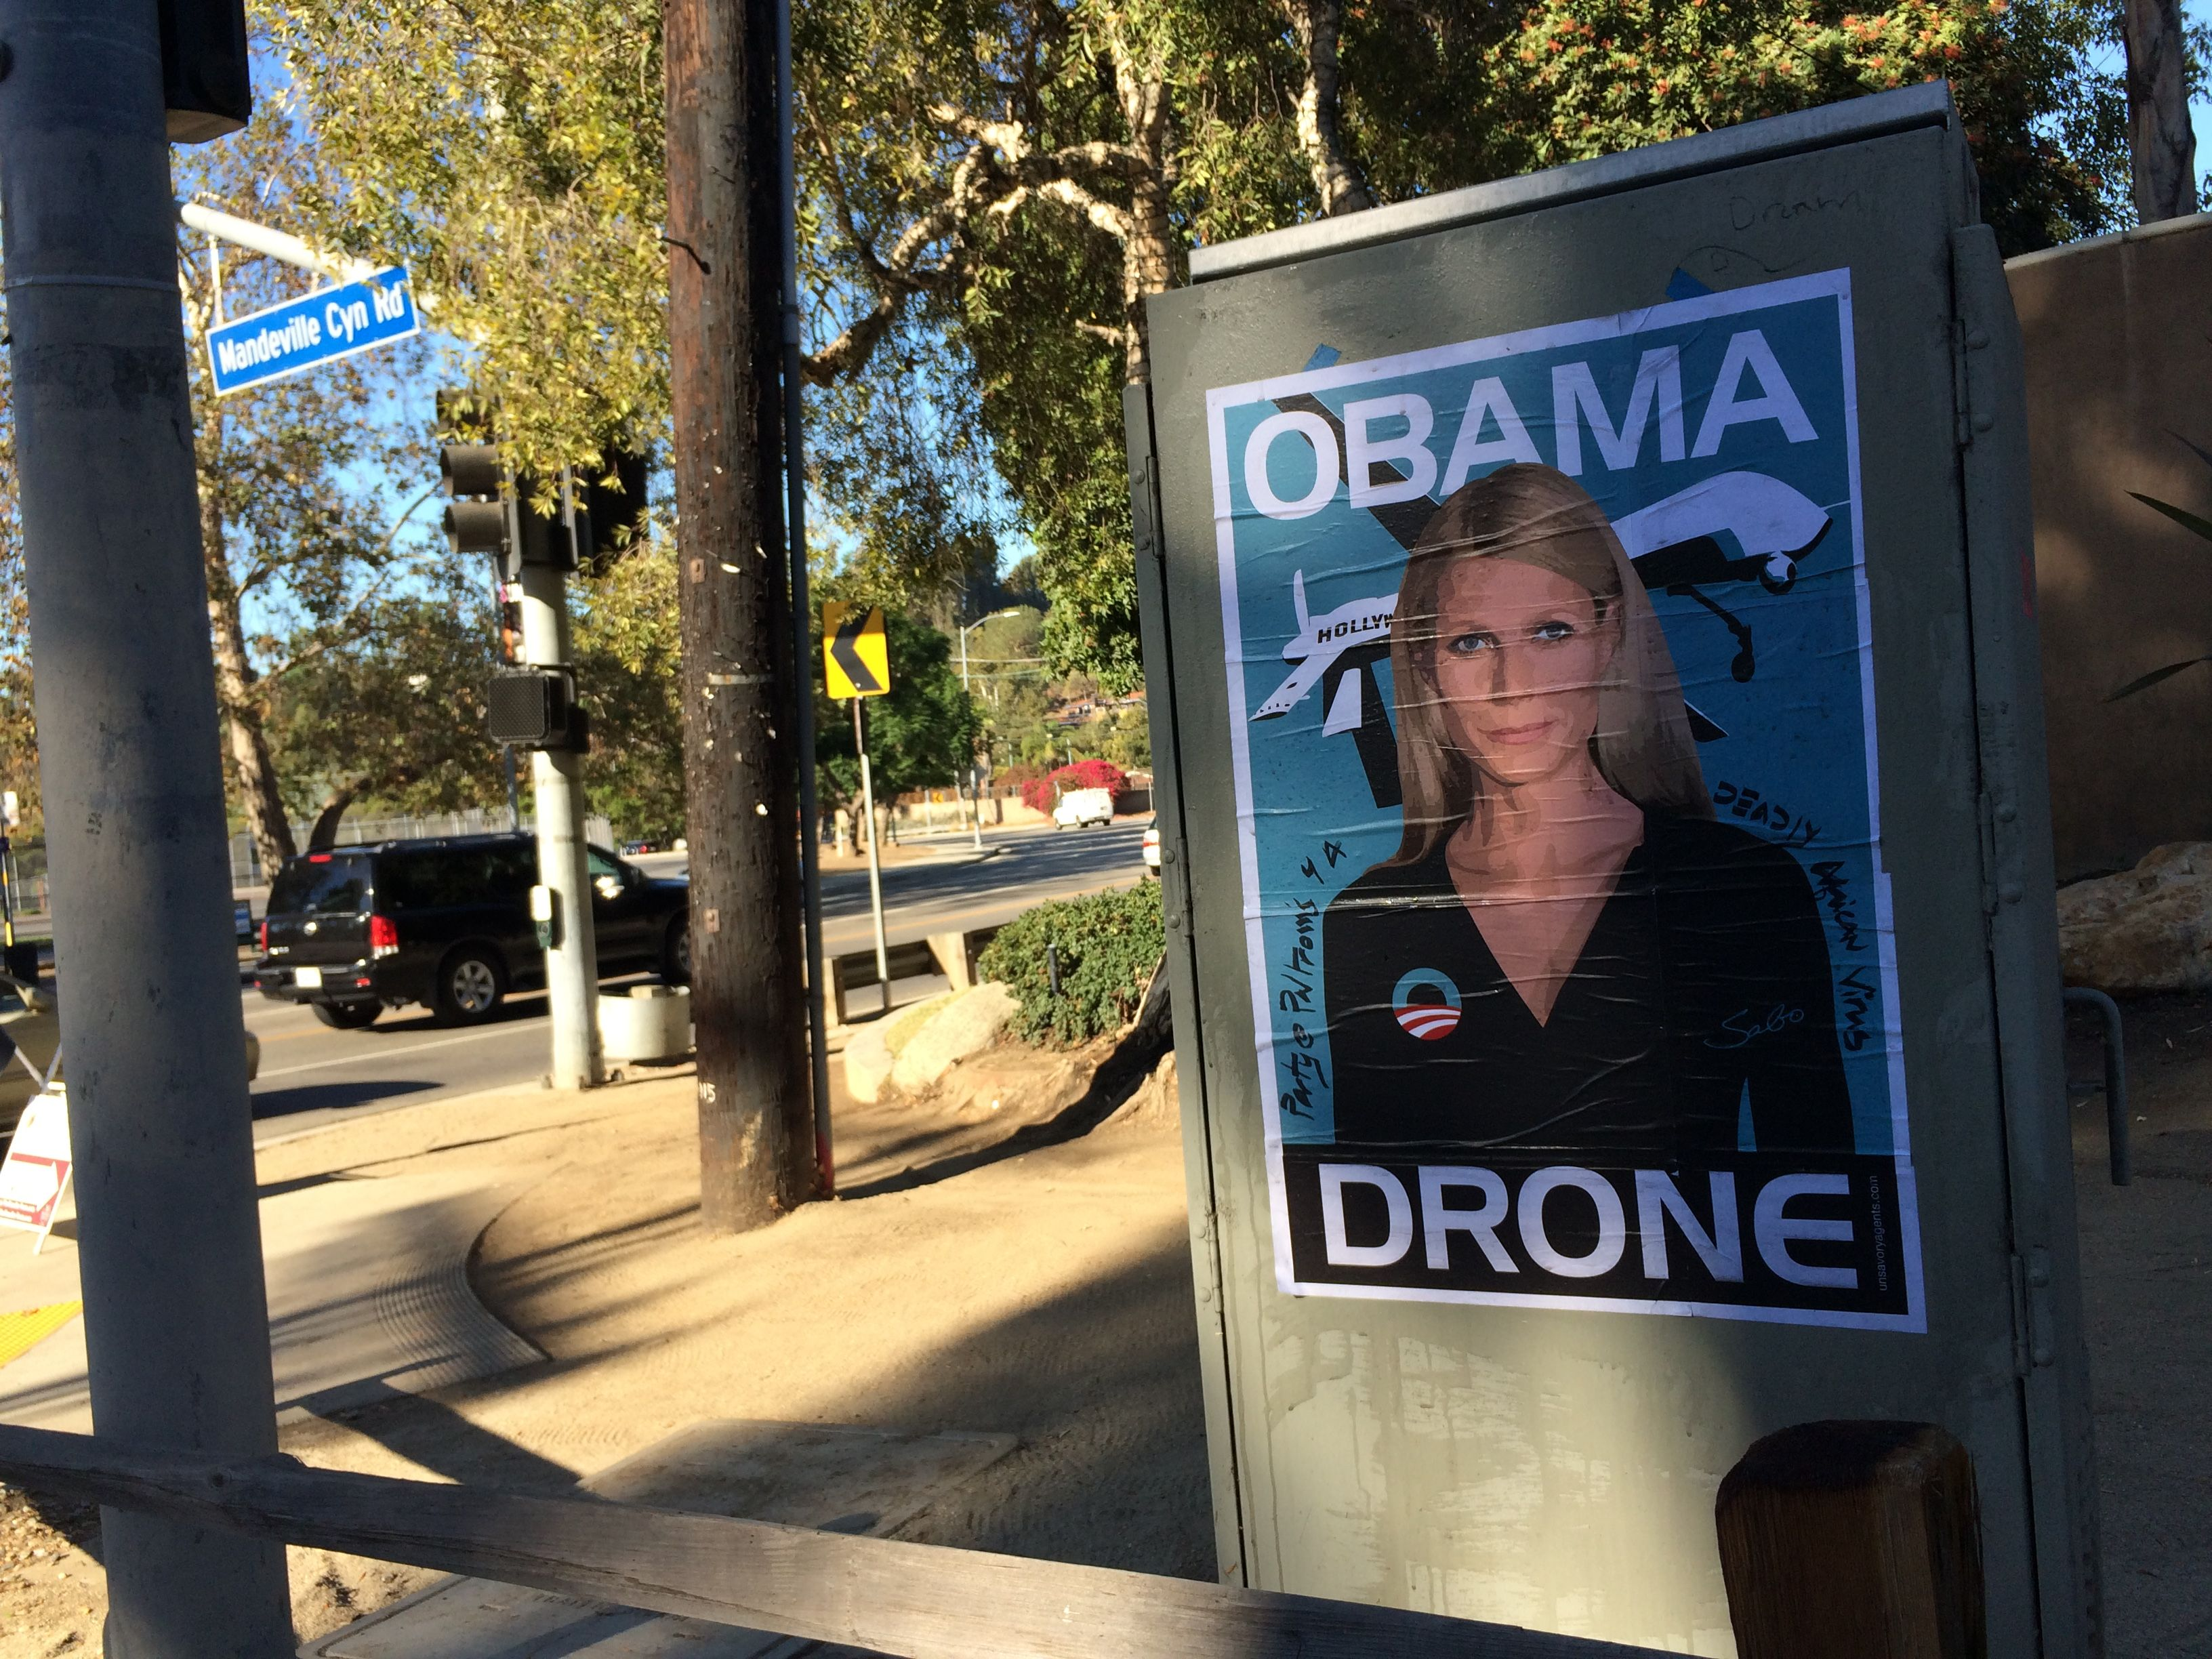 Gwyneth Paltrow Obama Drone posters poster Sabo President Obama DNC fundraiser L.A. Los Angeles Brentwood neighborhood neighbor neighbors hang hanging hung signs plaster plastering plastered traffic signal box boxes lamp posts bus benches anonymous conservative street artist provocative controversial subversive Unsavory Agents UnsavoryAgents outside political Democrats Democrat drones Predator plane planes flying background actor actress house host hosting gala her home